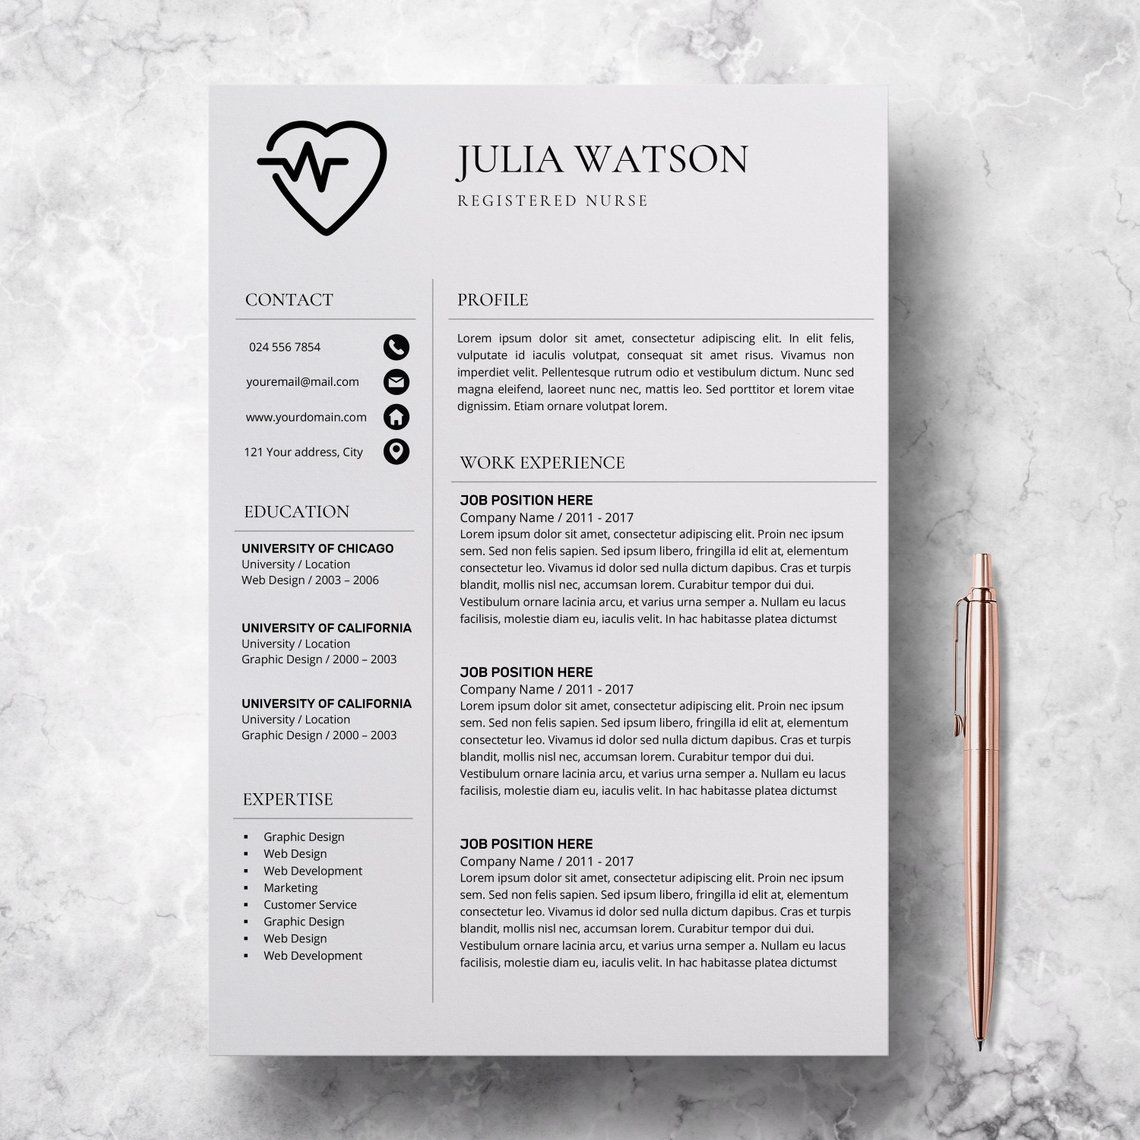 Functional Resume Example For Nurses